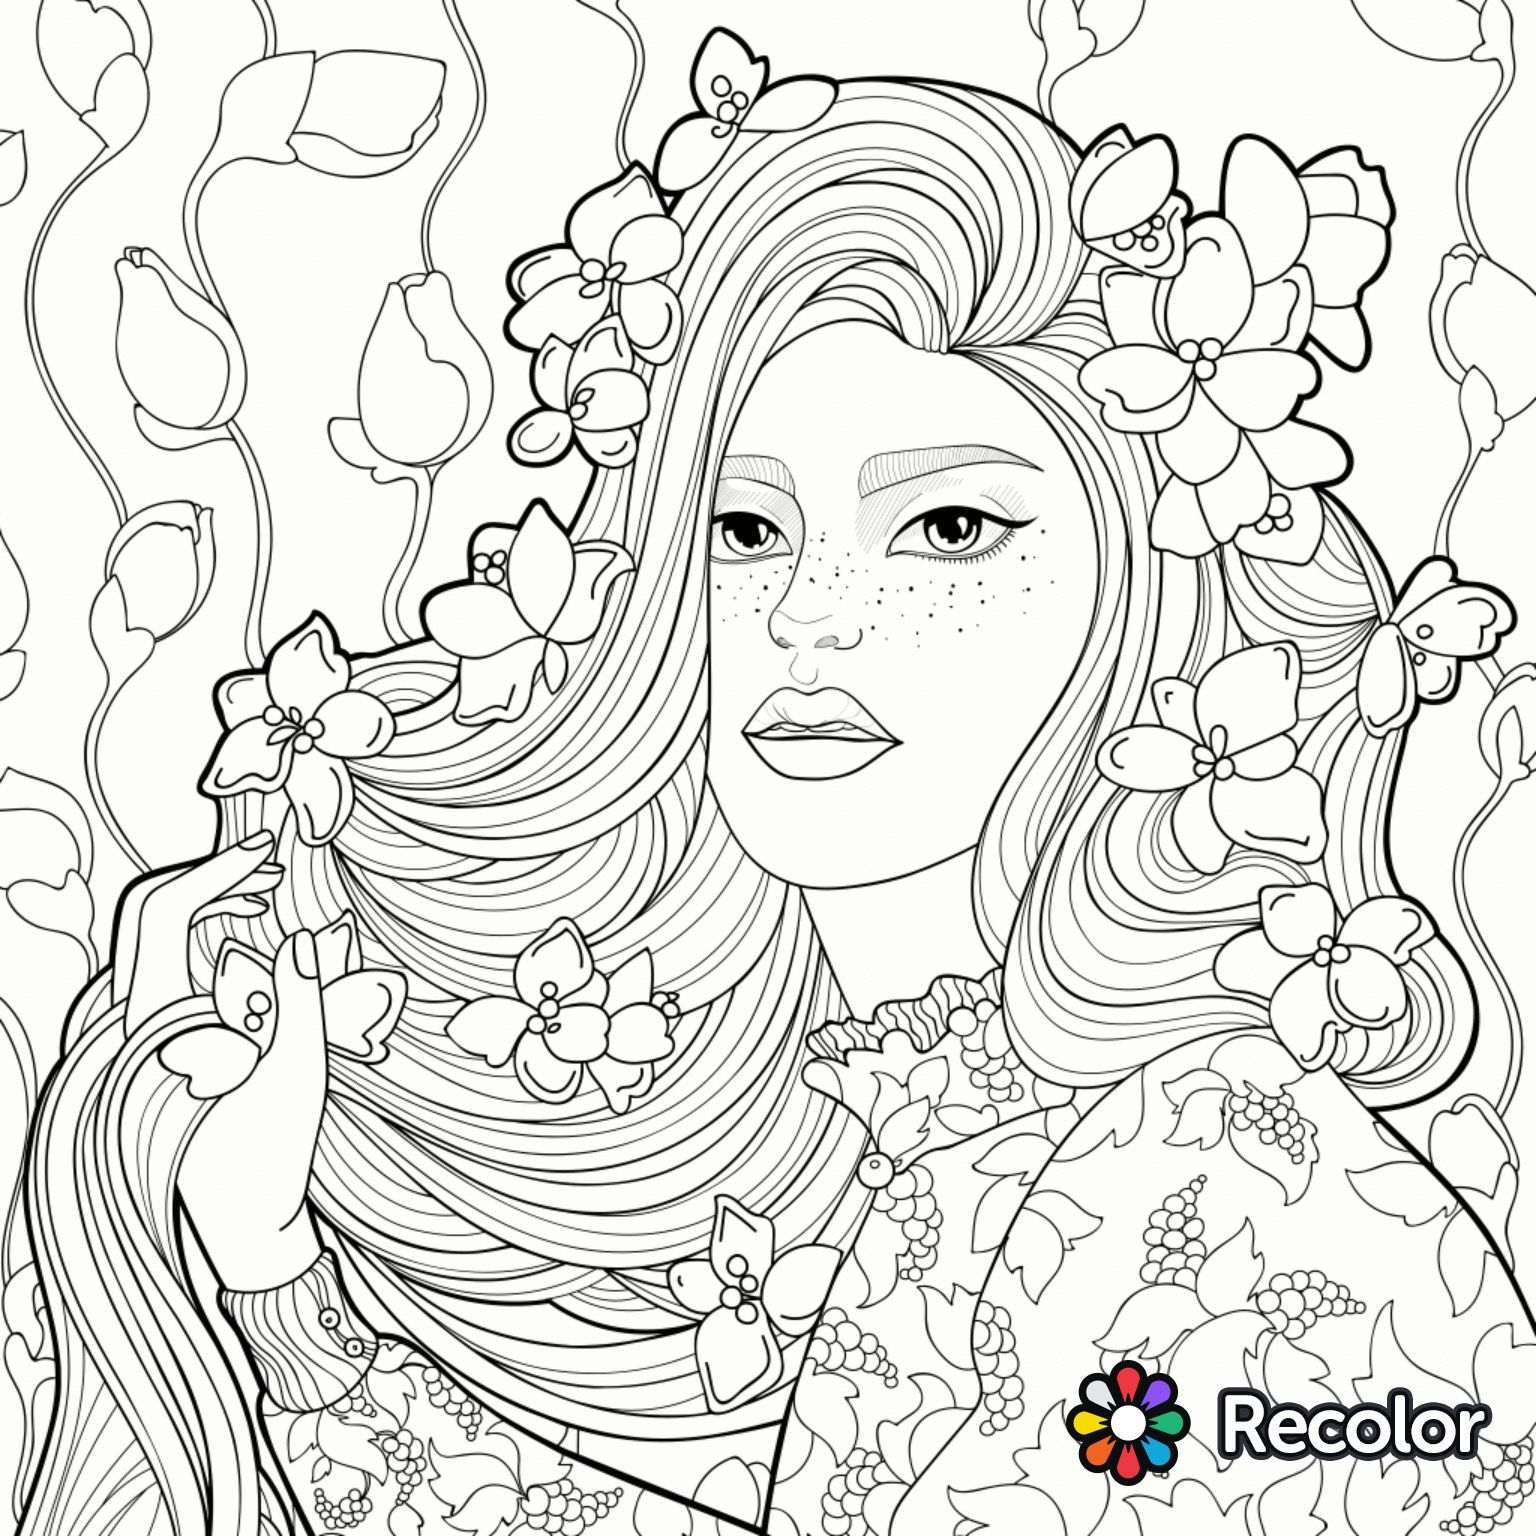 Coloring Page For Girls 44be33ce334c5d705bc330e4aea0d2ec Cute Coloring Pages Coloring Pages Coloring Pages For Girls